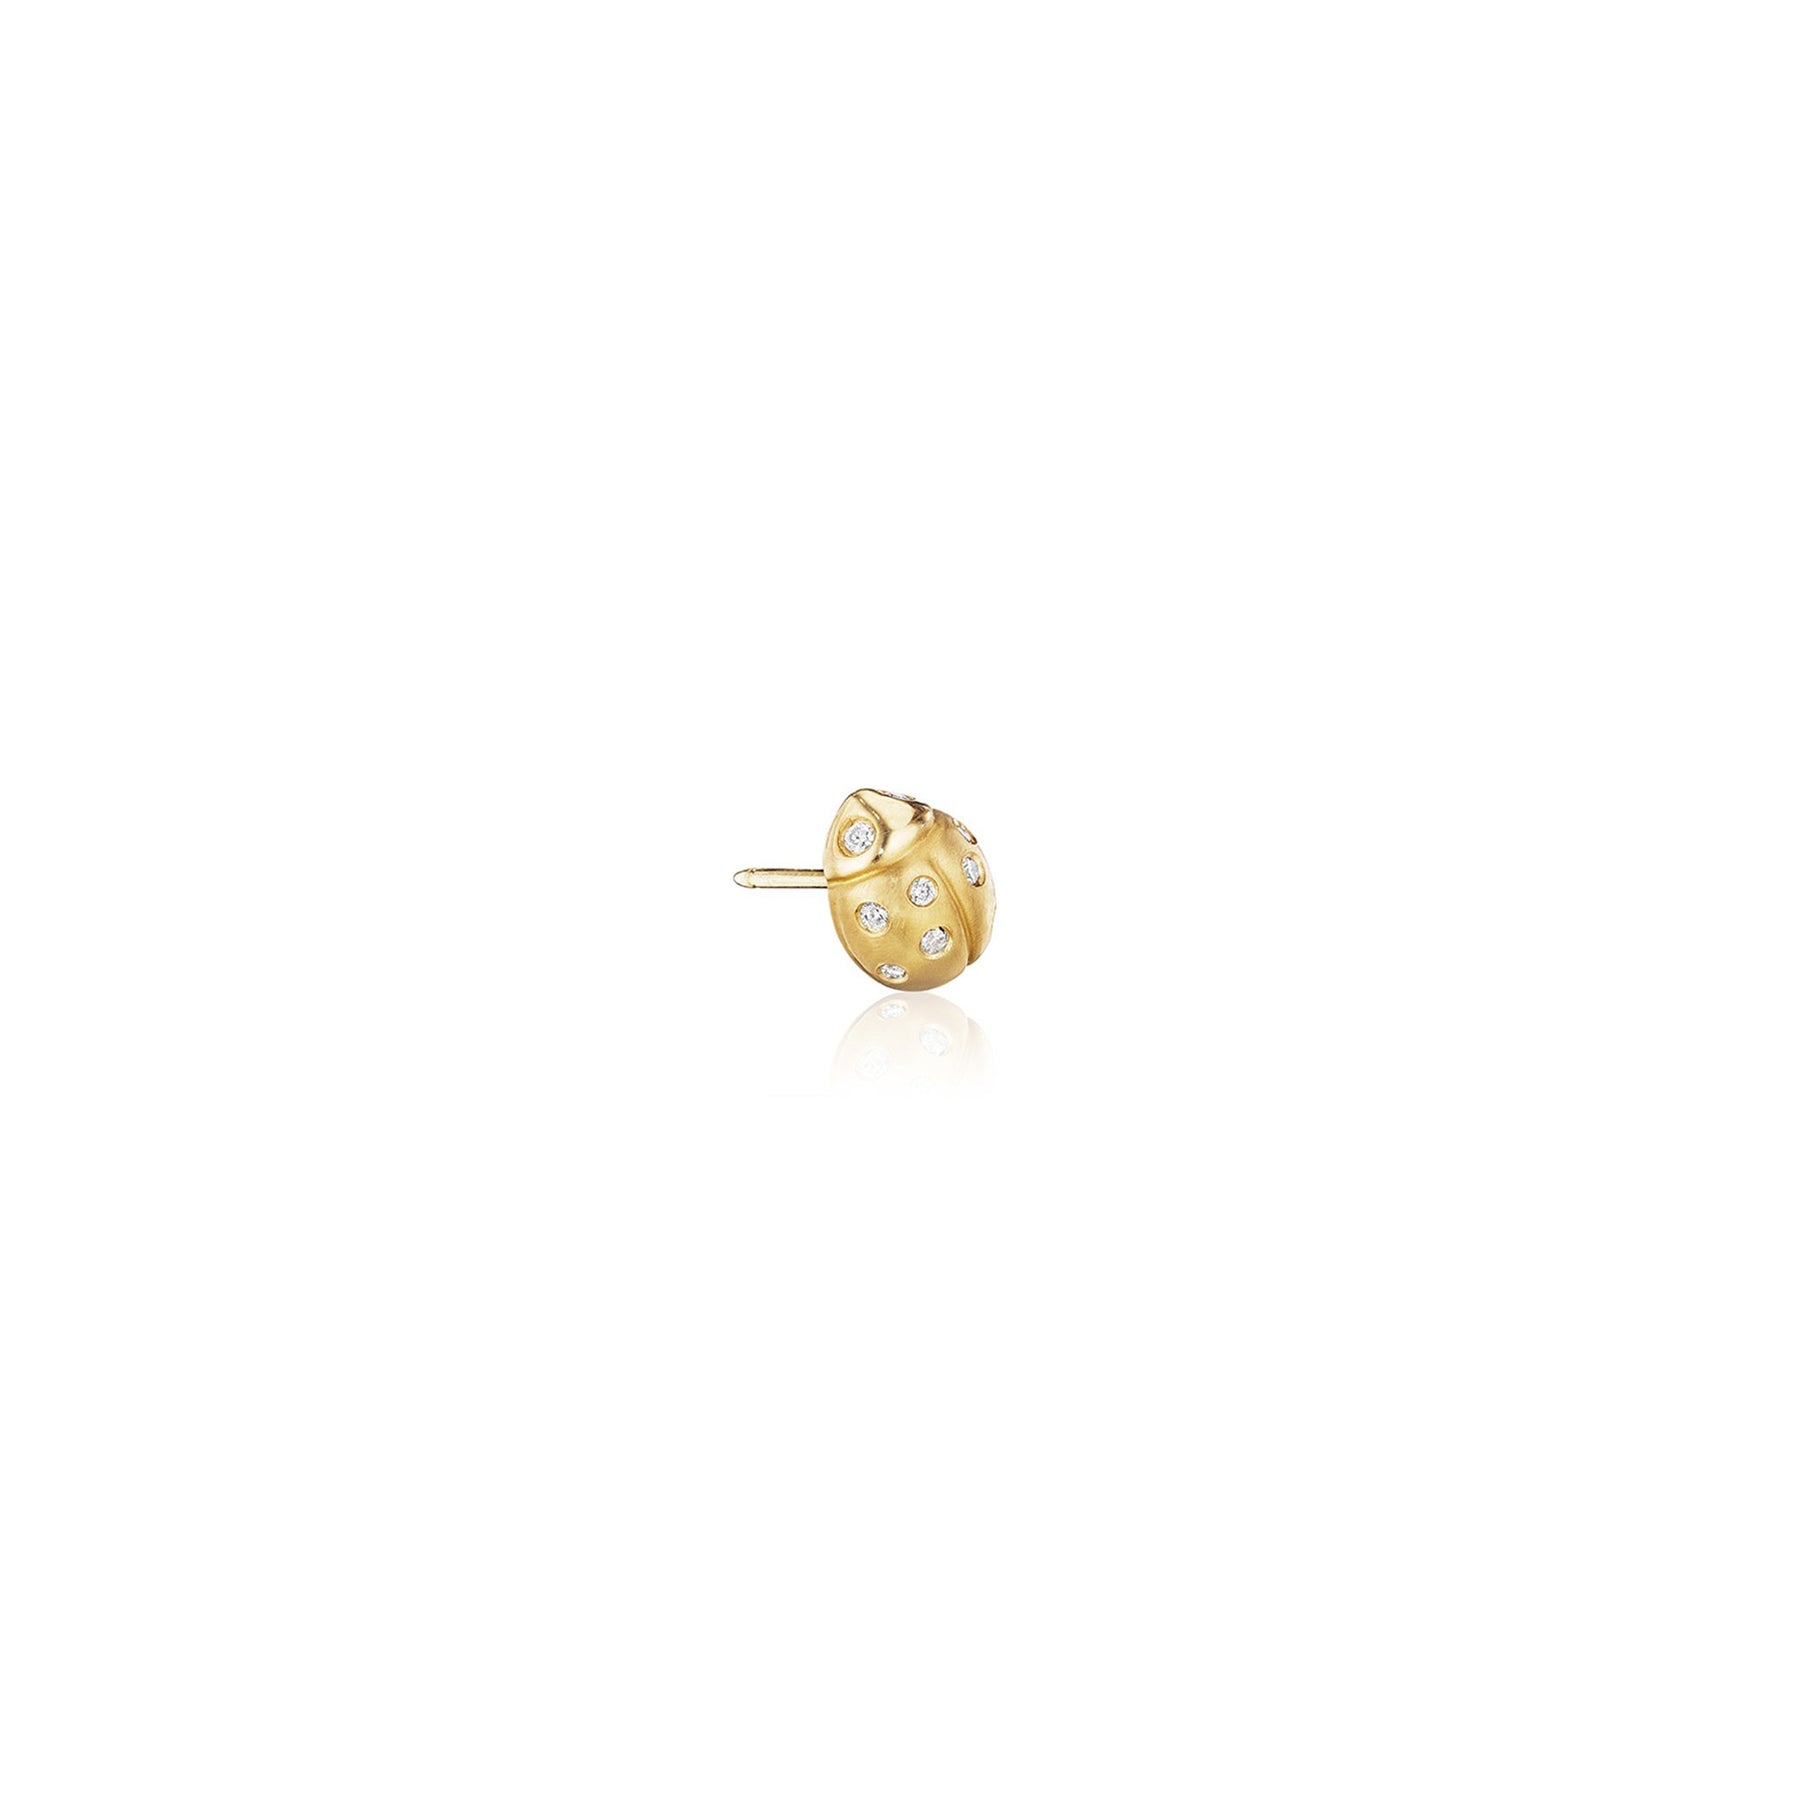 Mimi-So-Wonderland-Diamond-Ladybug-Single-Stud-Earring_18k Yellow Gold